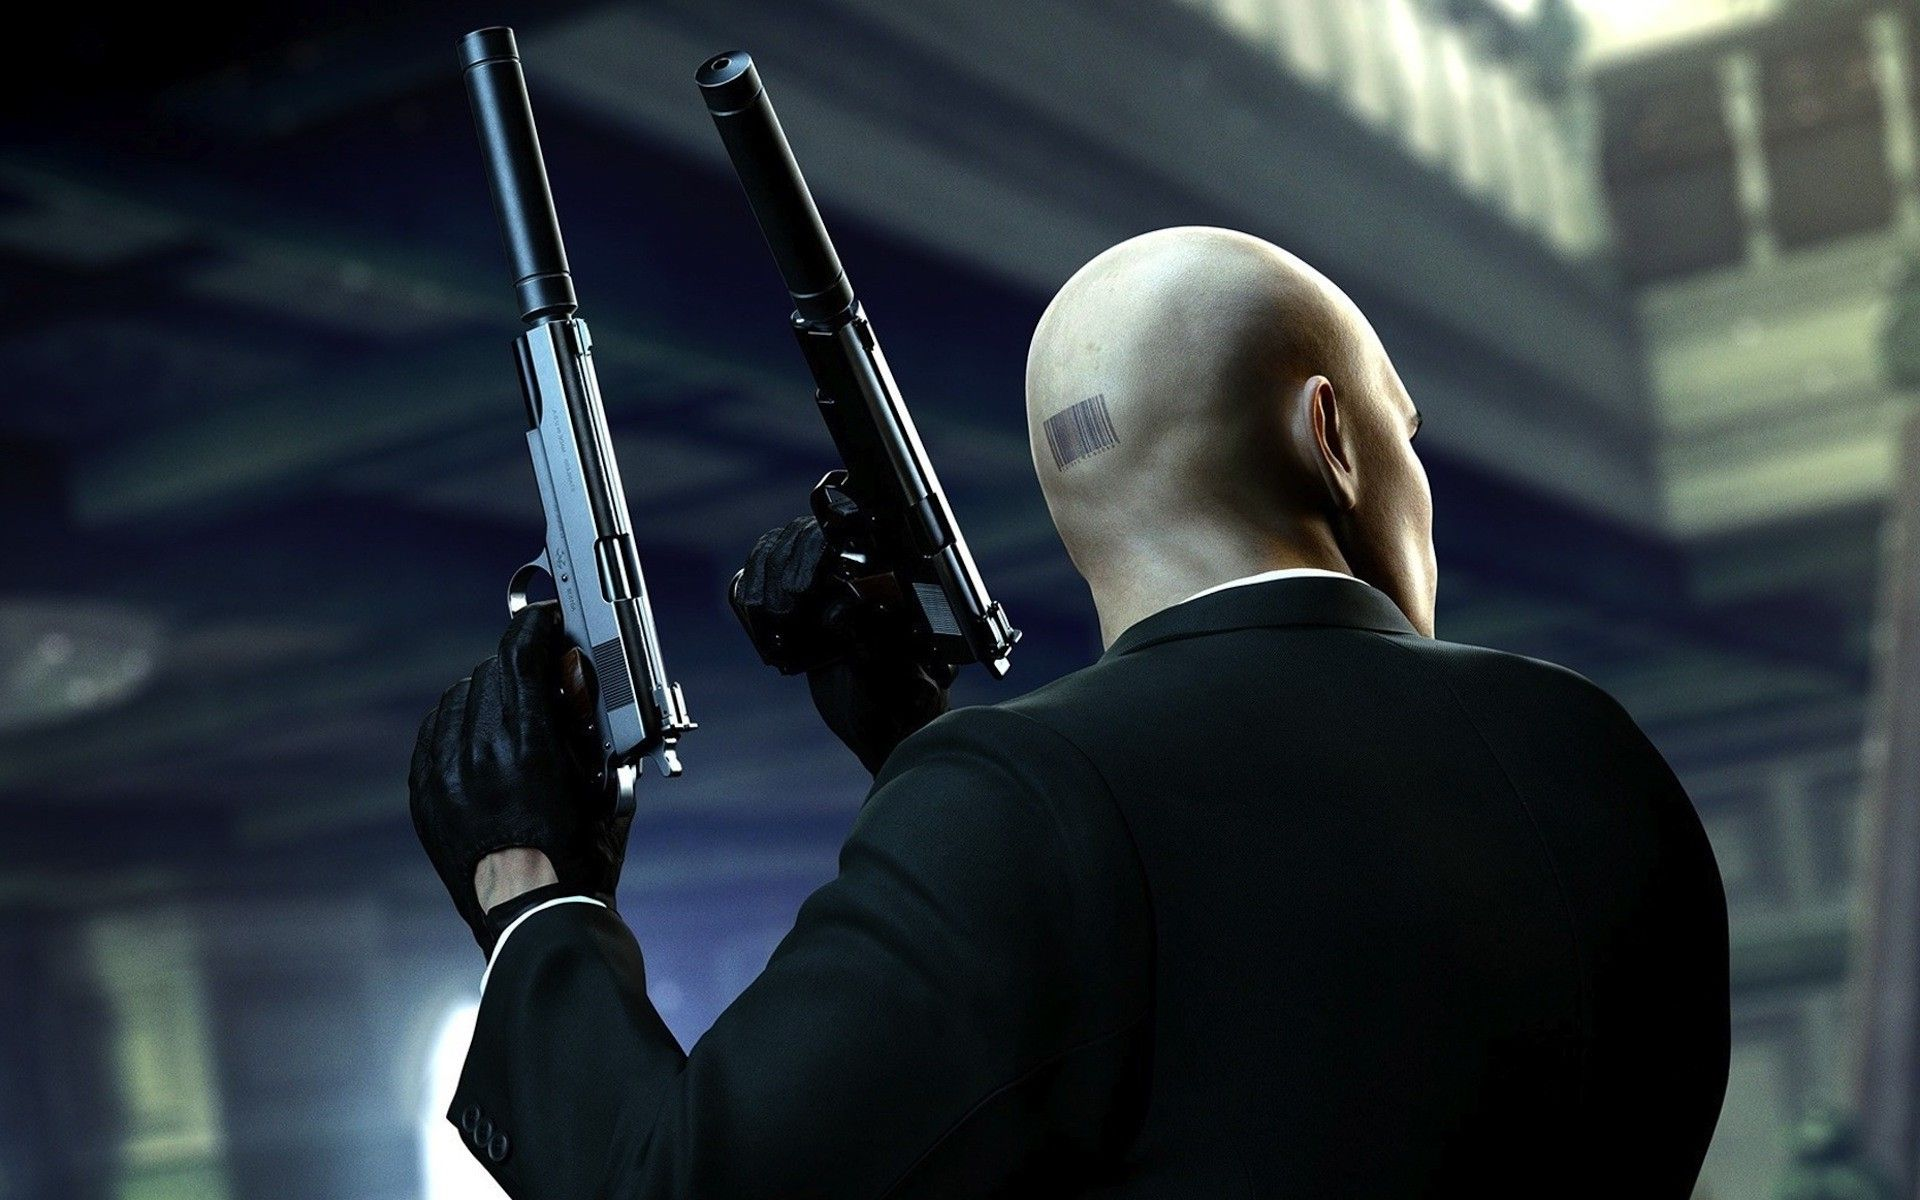 Hitman agent 47 wallpapers top free hitman agent 47 backgrounds wallpaperaccess - Agent 47 wallpaper ...